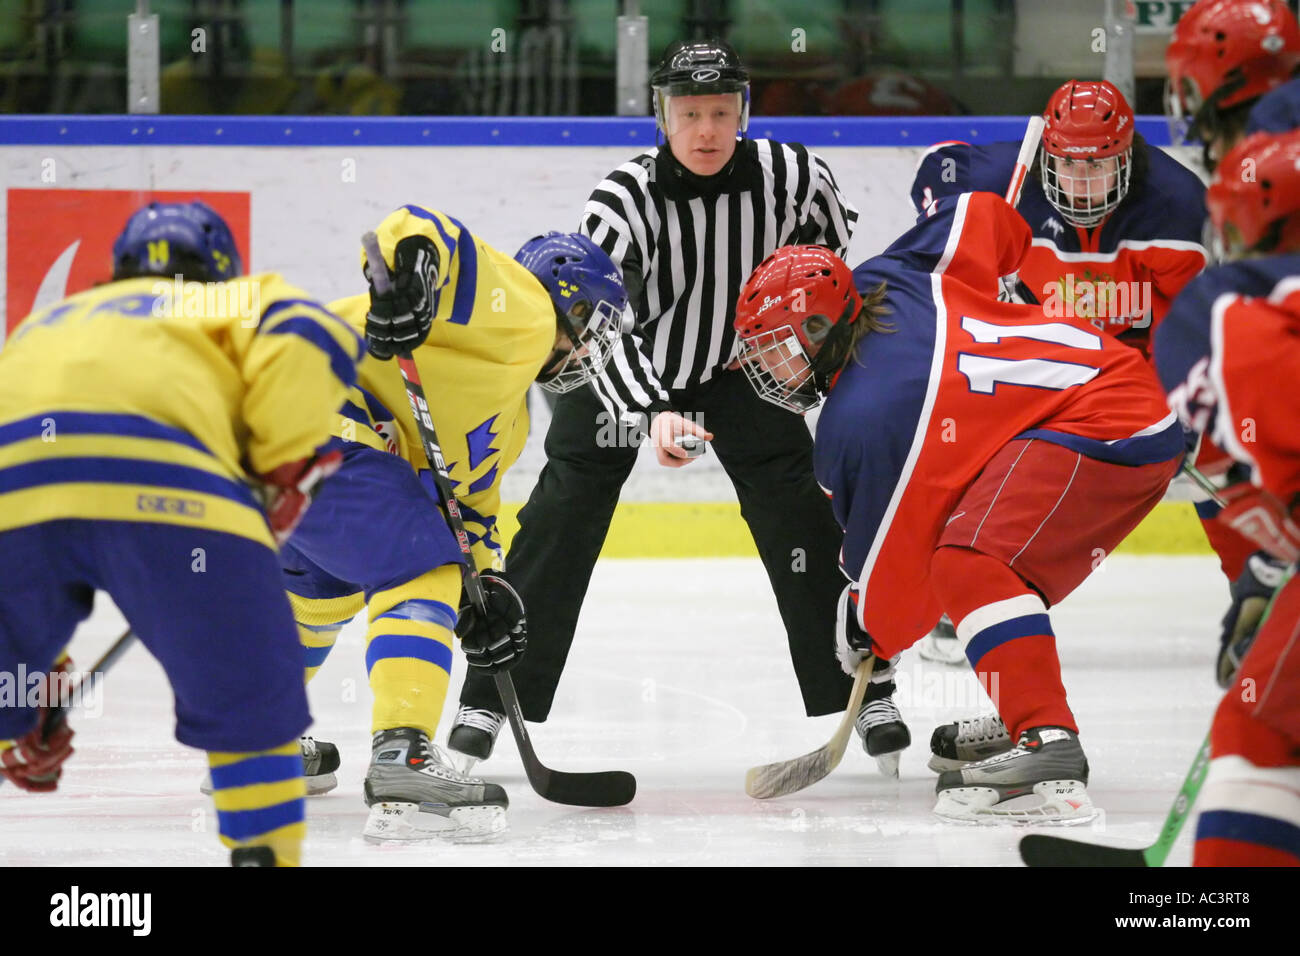 Face off at an ice hockey game between team Sweden and team Russia in an international tournament for 17 year old teenagers. - Stock Image